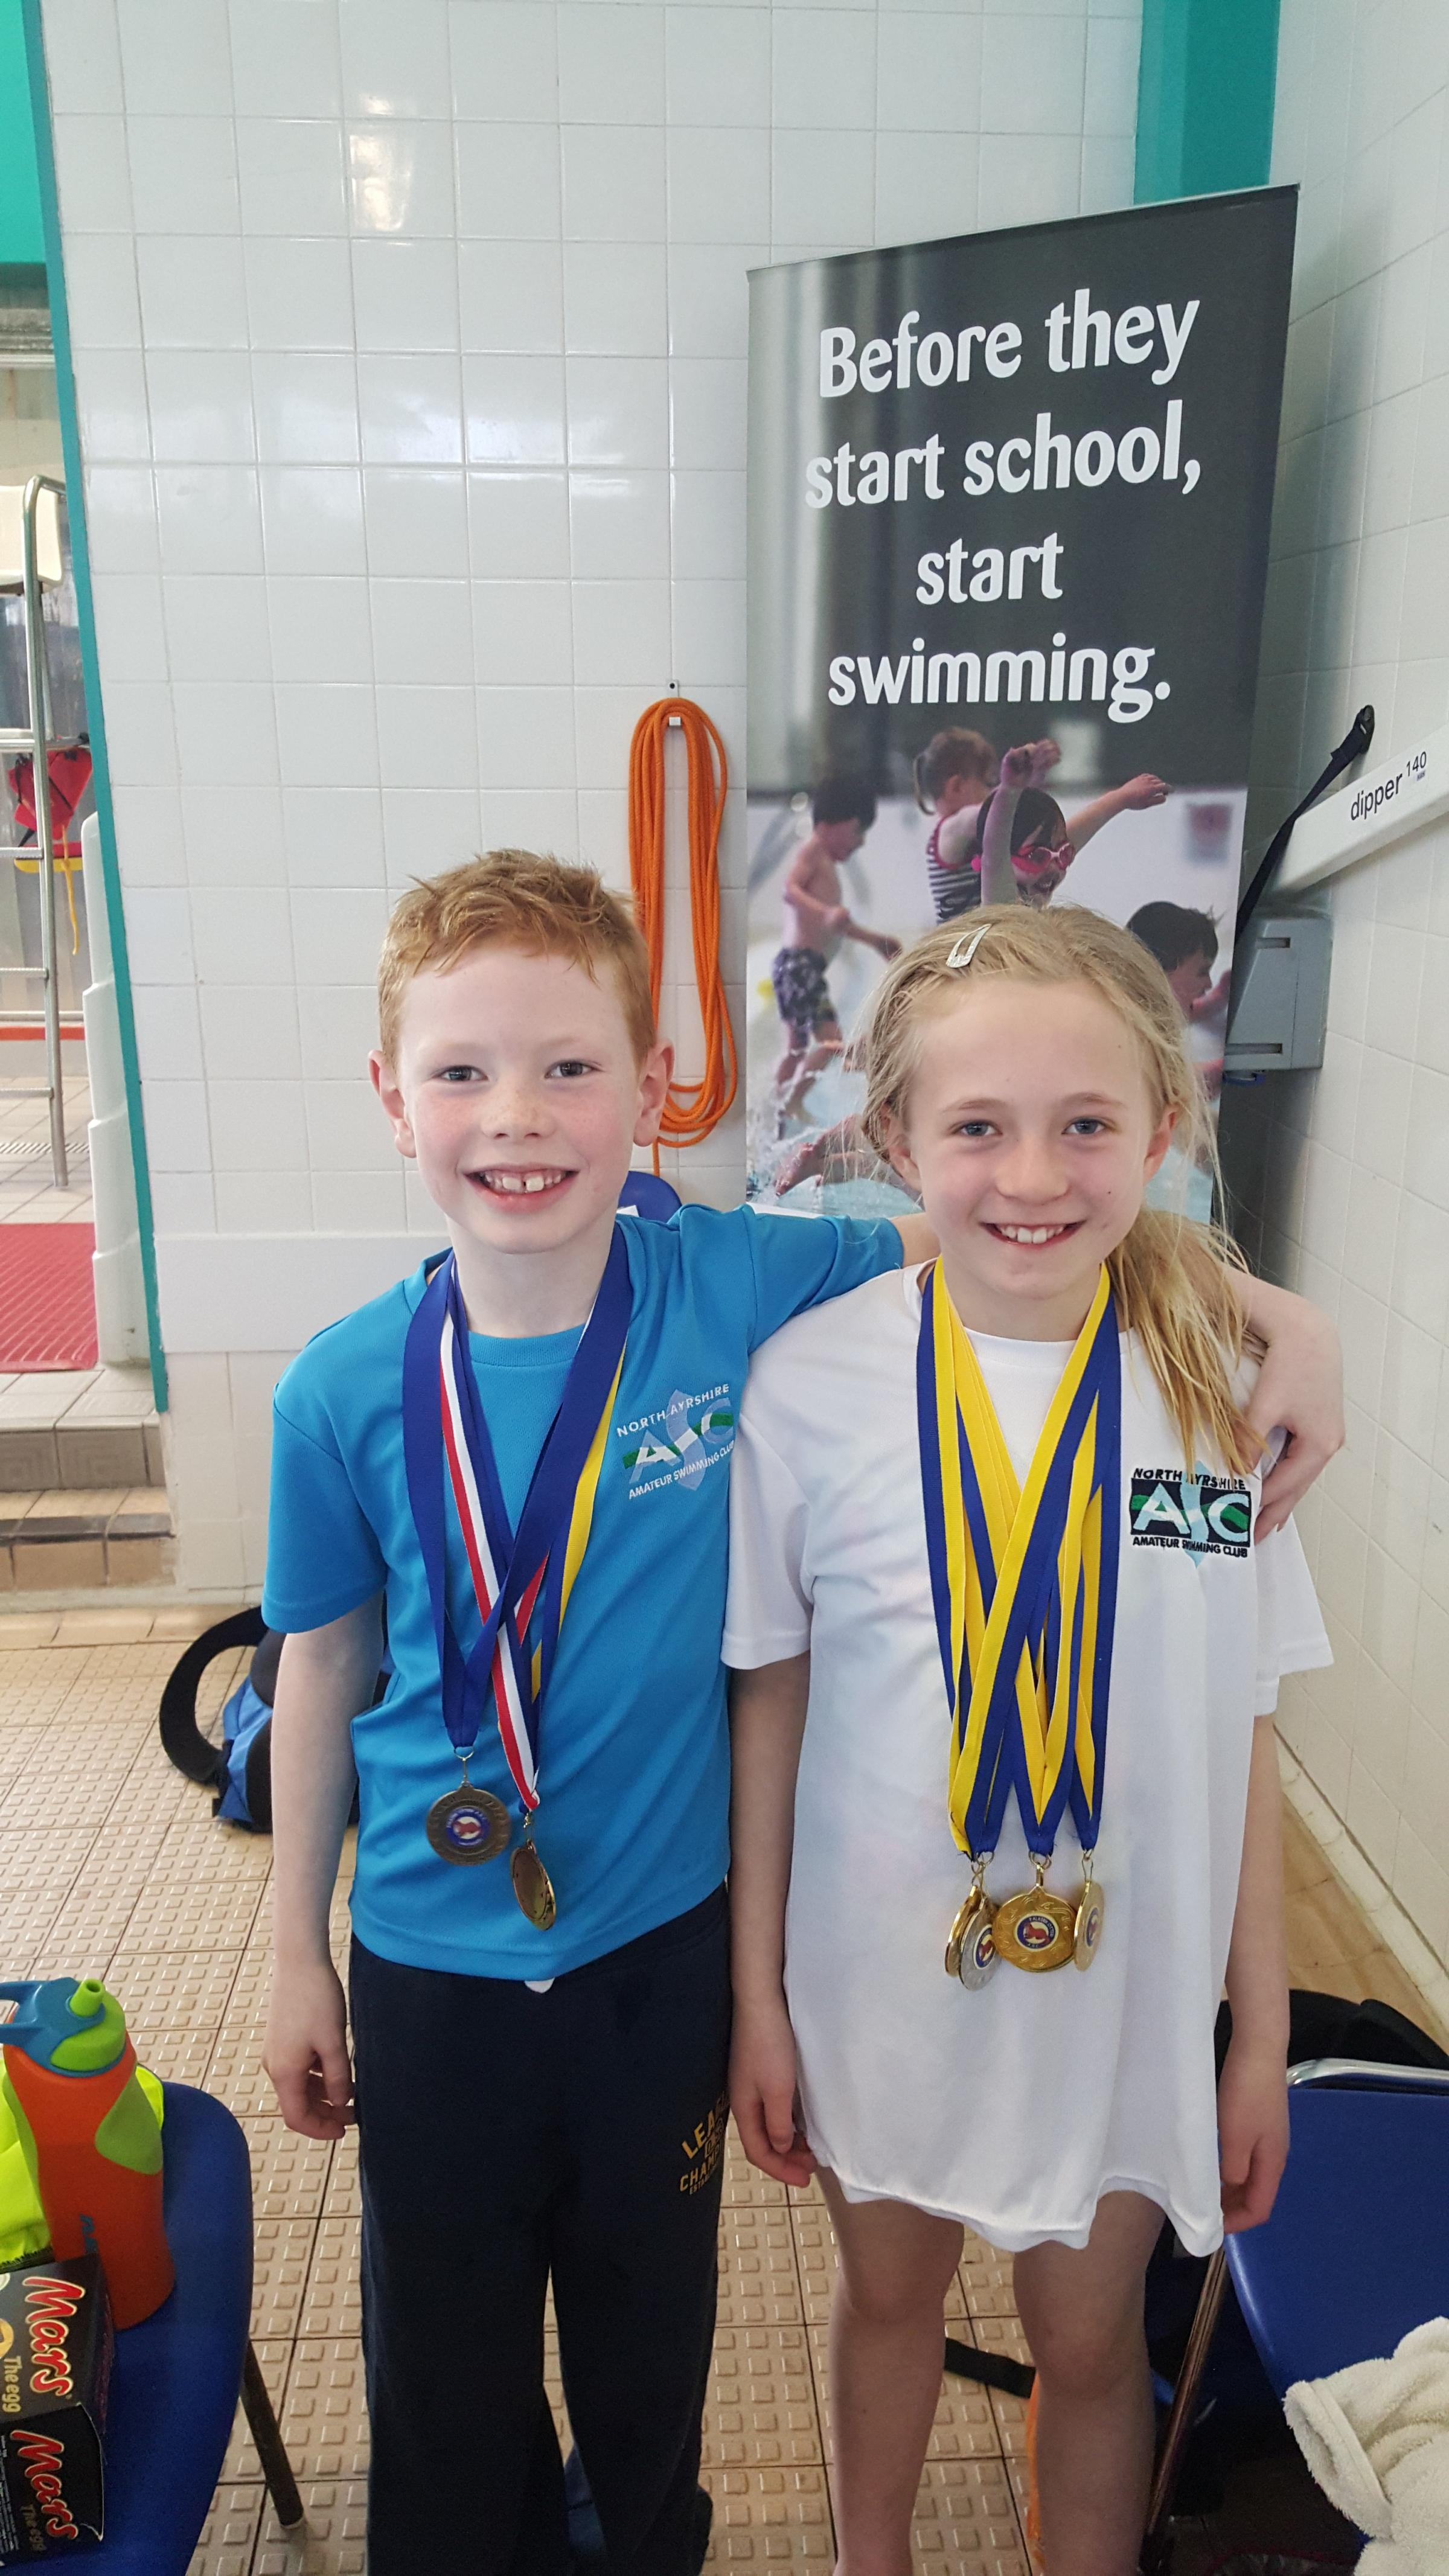 Making waves ... Largs swimmer Isla wins gold in swim